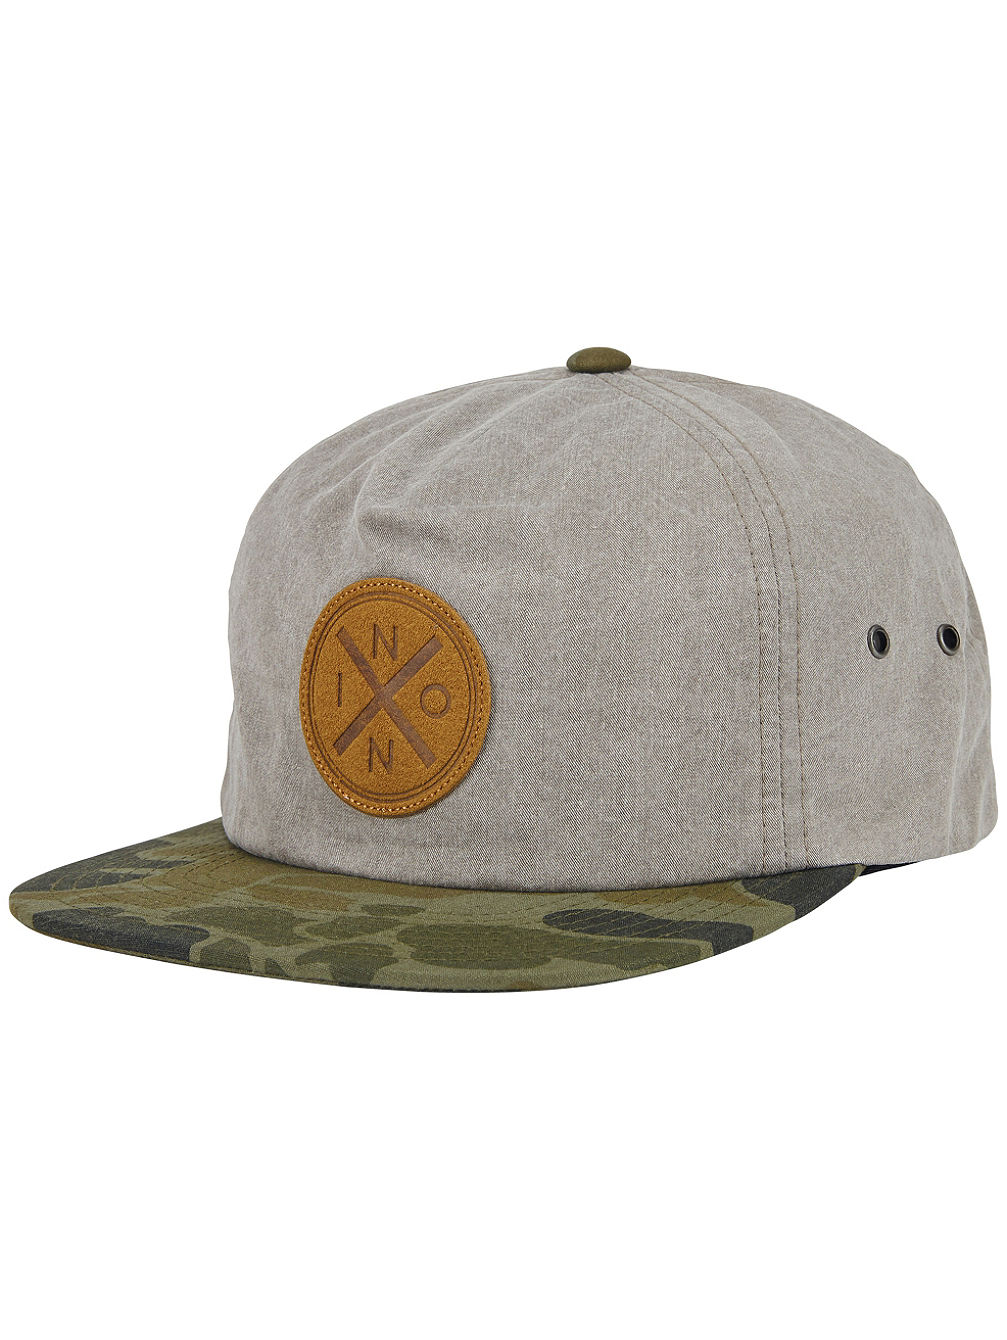 Beachside Snap Back Cap